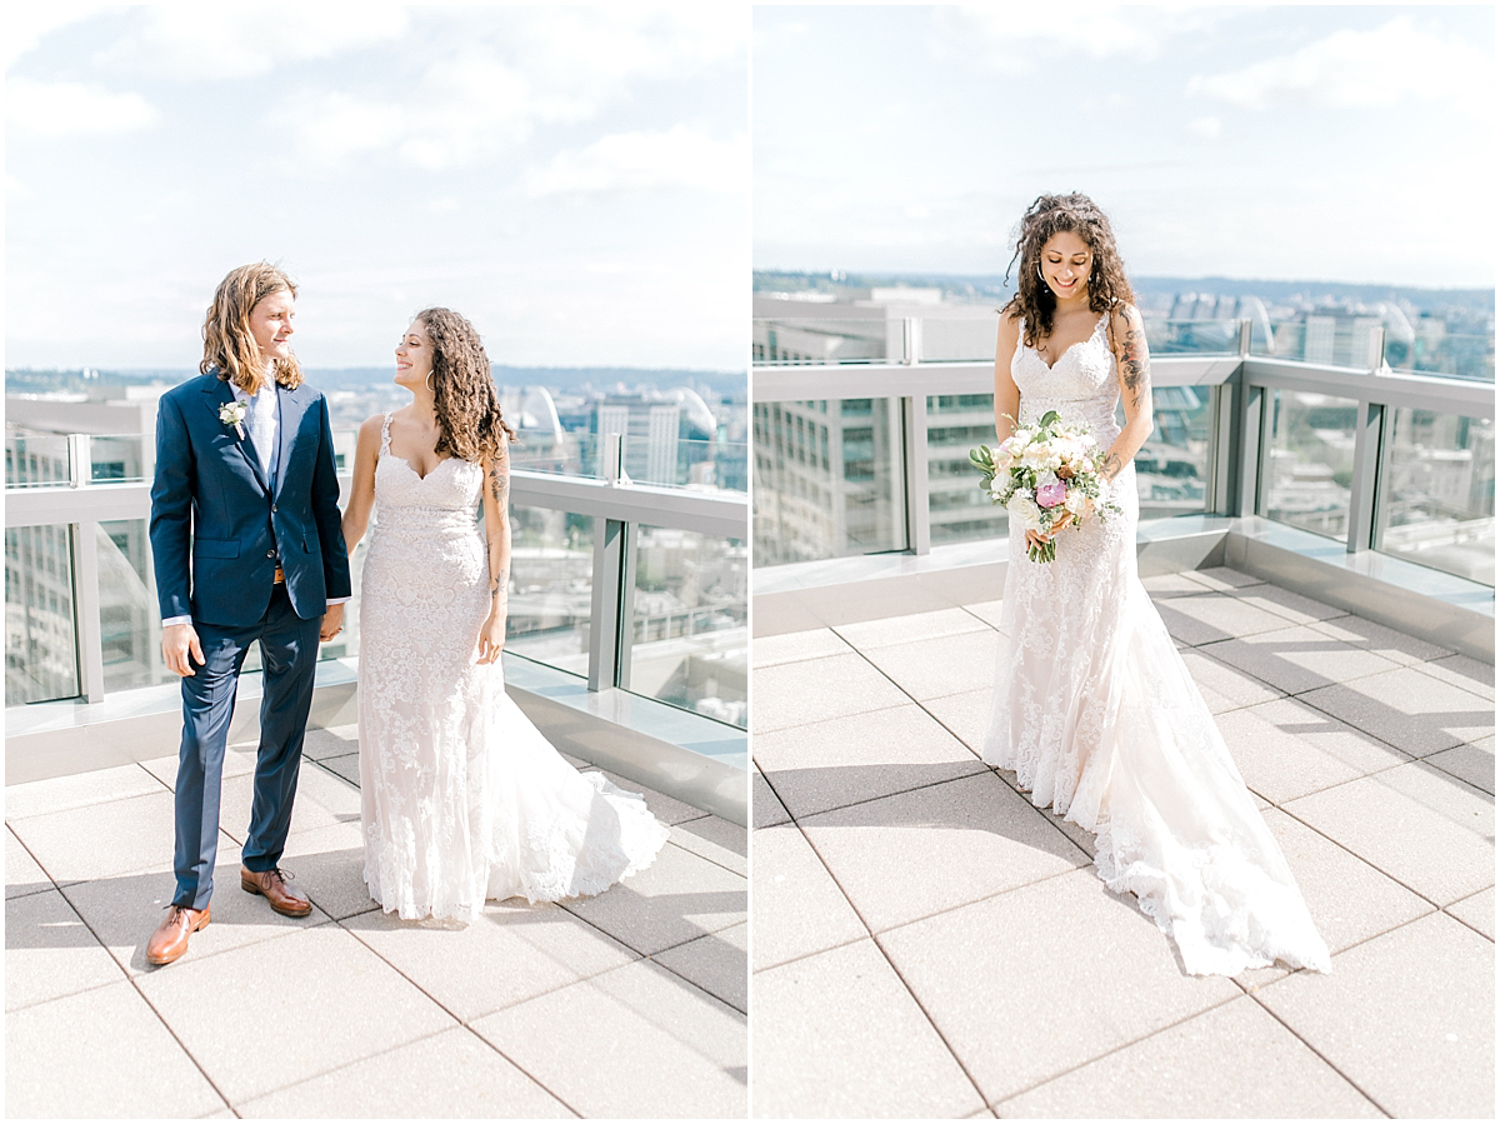 Seattle City Hall Courthouse Wedding Elopement | Seattle Wedding Photographer | Emma Rose Company | Downtown Seattle Wedding Inspiration | Pacific Northwest Elopement | Courthouse Elopement in the City-53.jpg